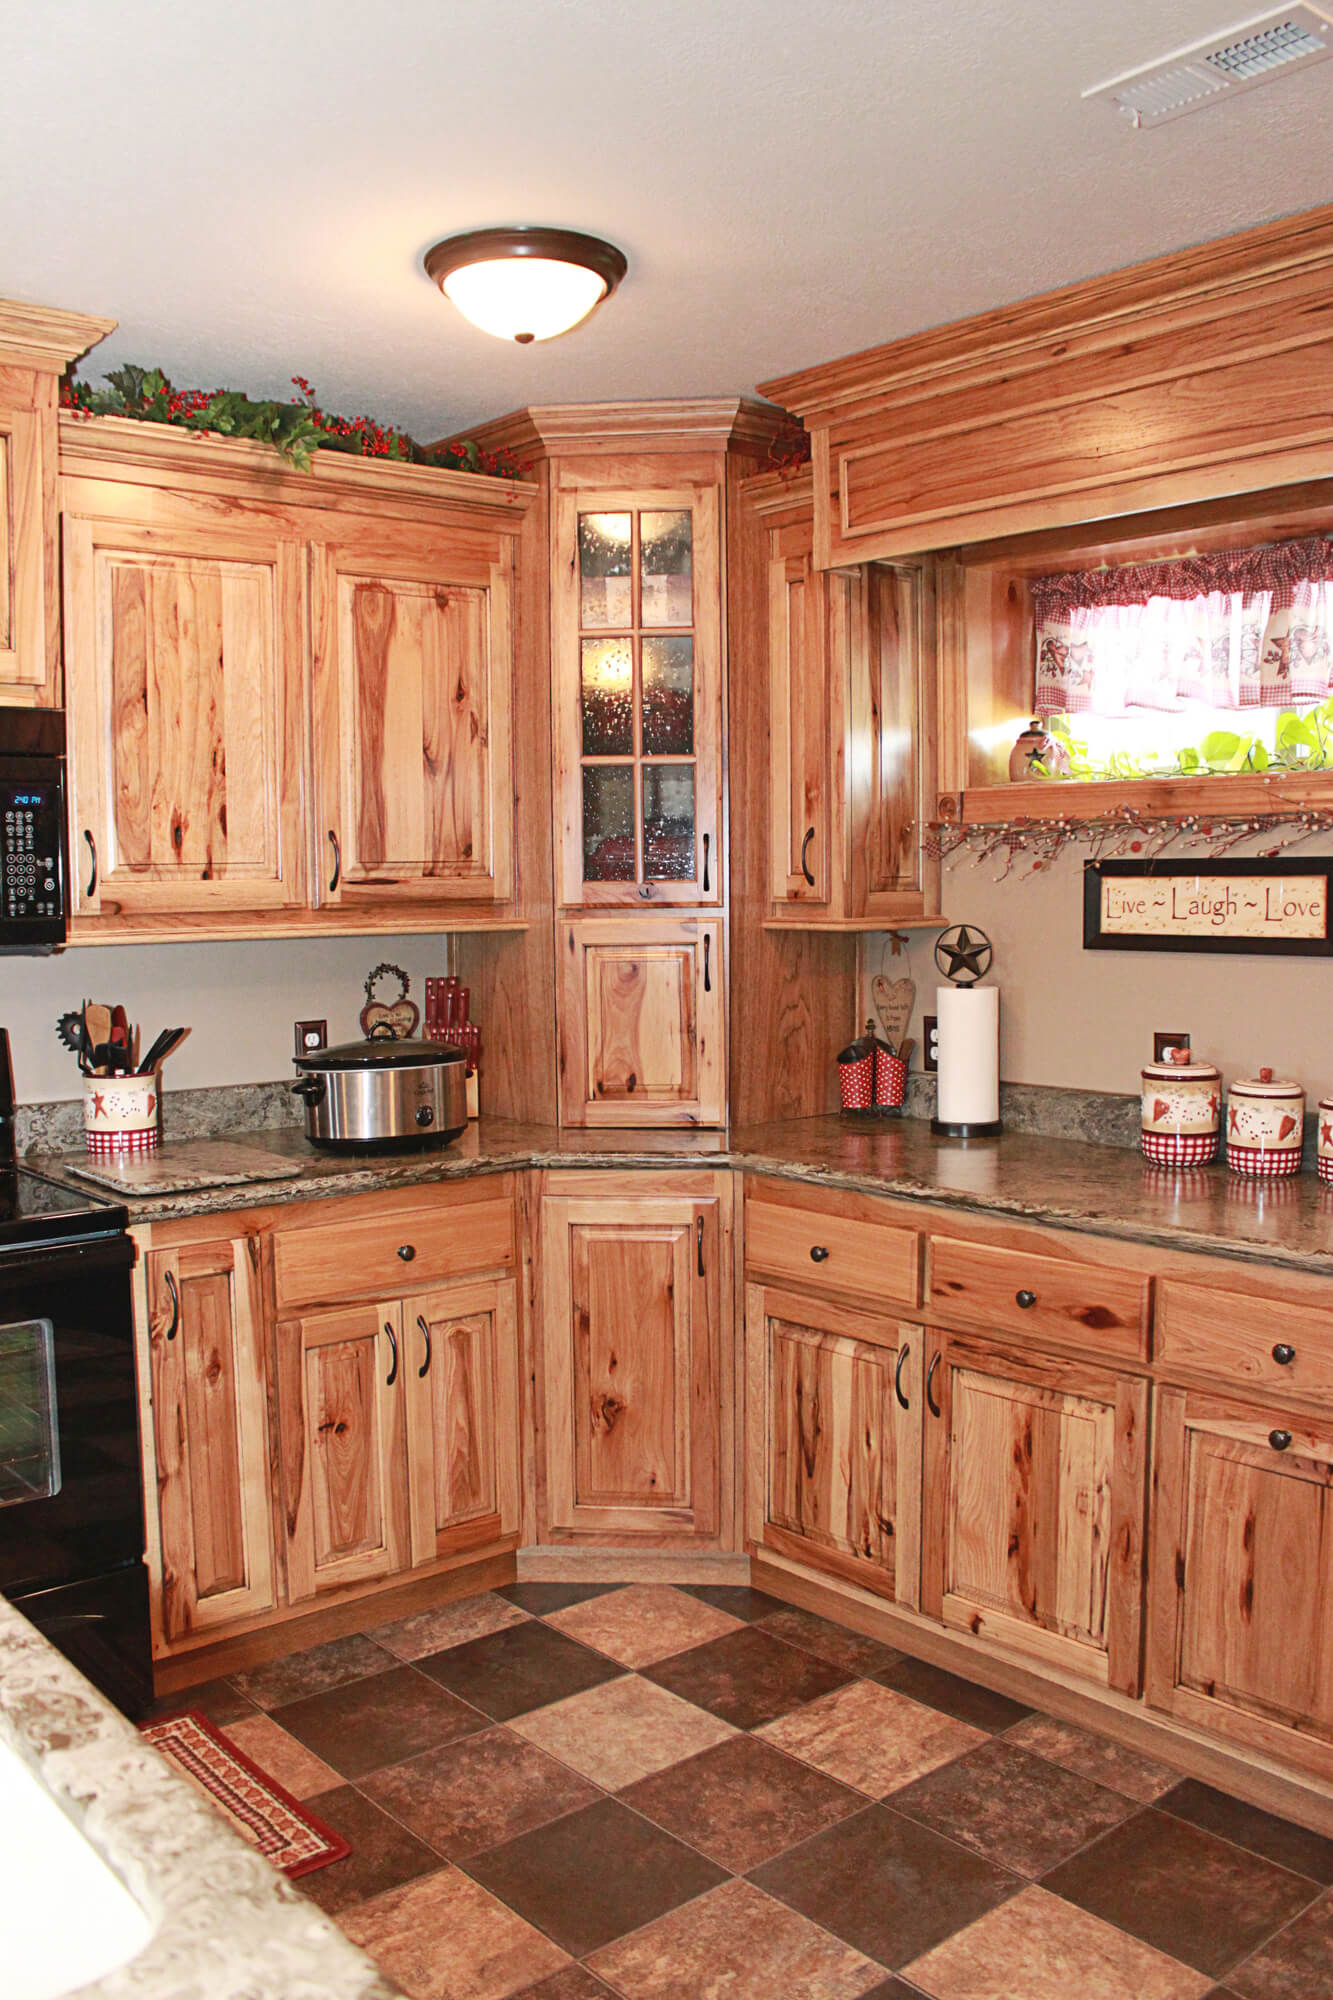 The cabinets plus rustic hickory kitchen cabinets for Cabinets kitchen cabinets